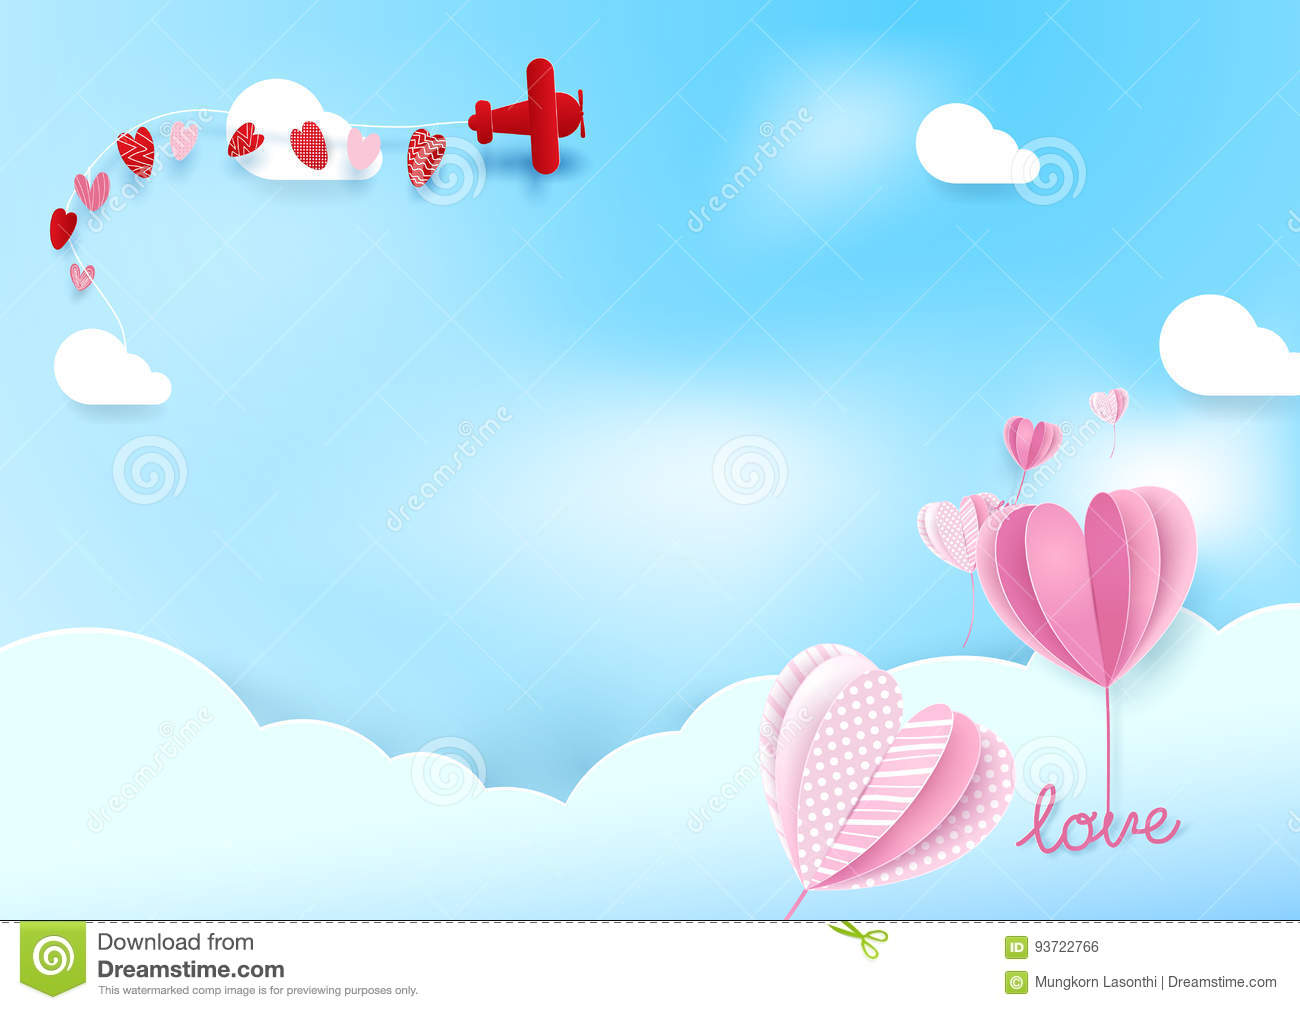 Paper art style Heart shape balloons flying in sky with airplane